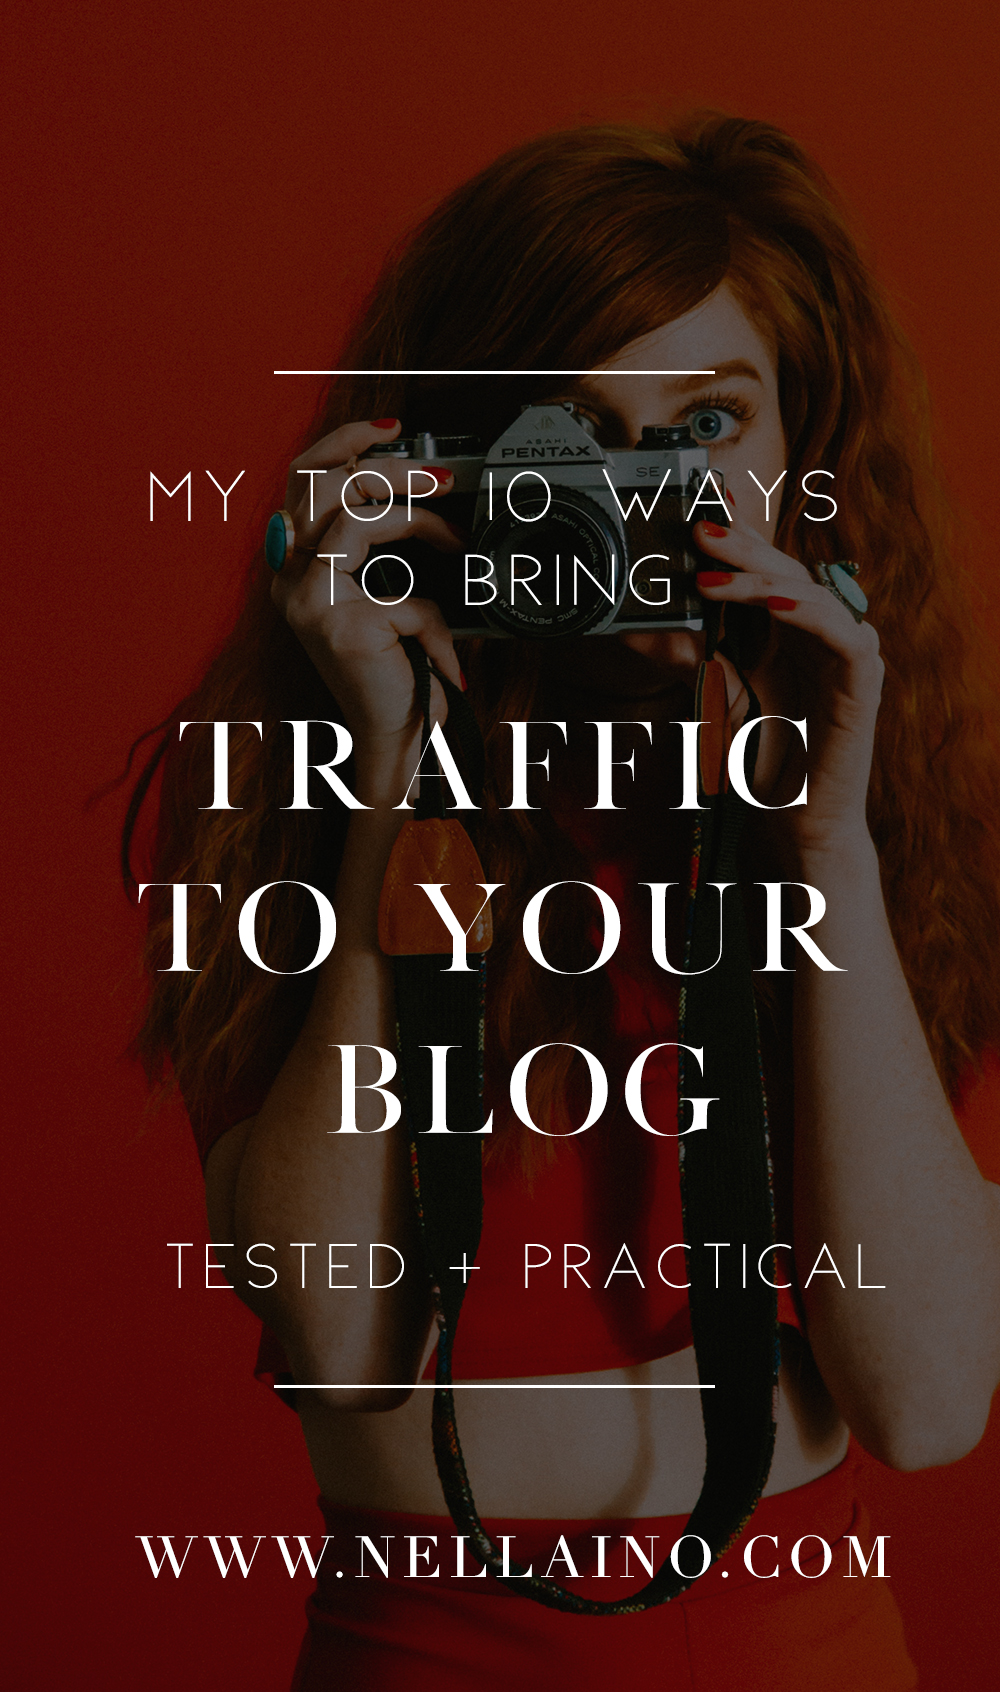 Blog-traffic-from-Pinterest-by-Nellaino.jpg